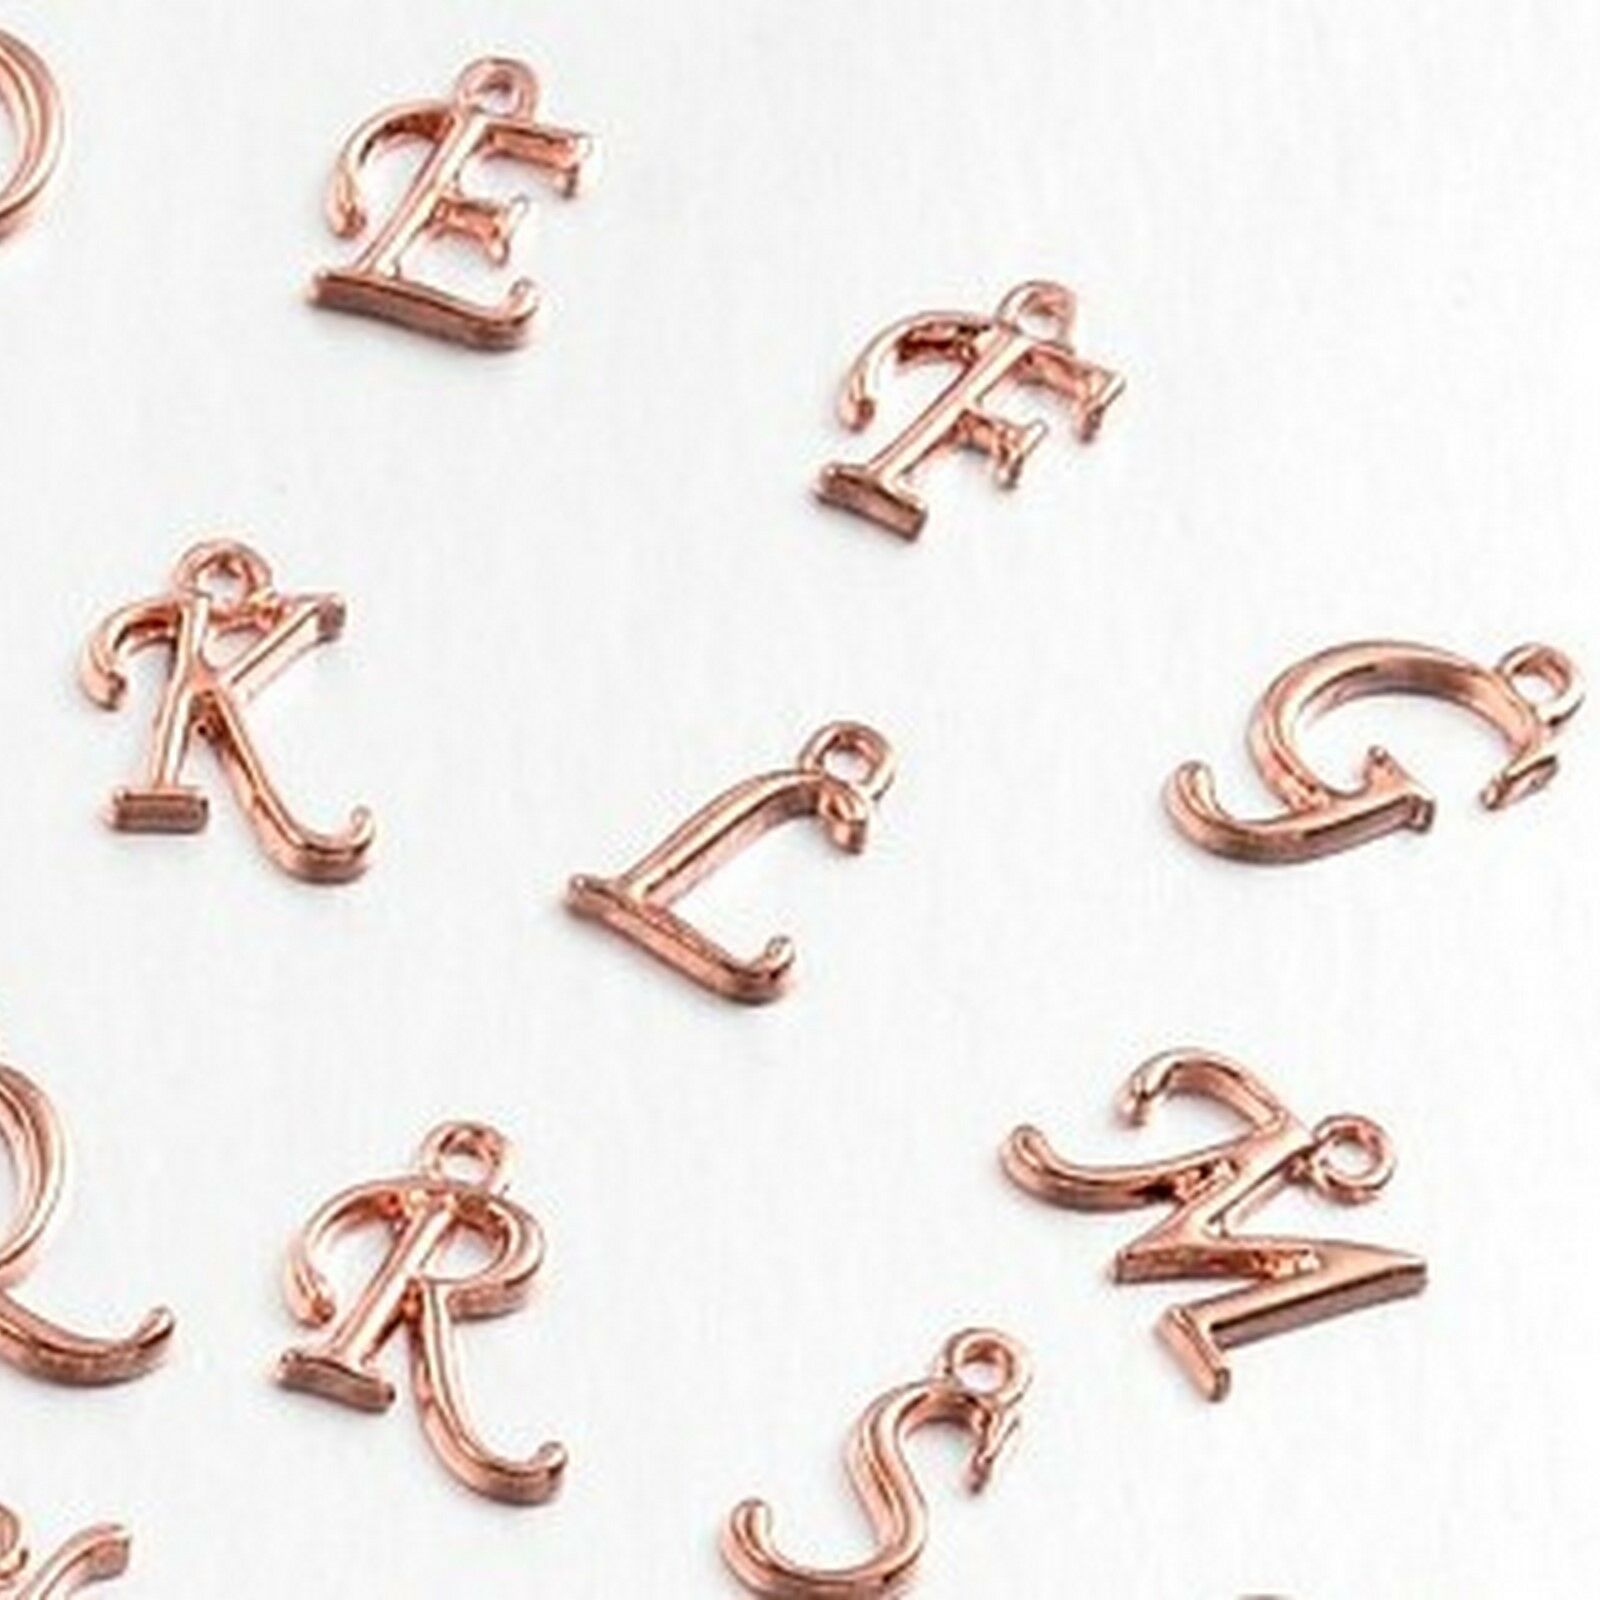 a-z Rose Gold Initial Letter Charm Pendant Cursive Initial gold plated Brass Alphabet necklace Initial Jewelry Findings Supplies ss1526-2